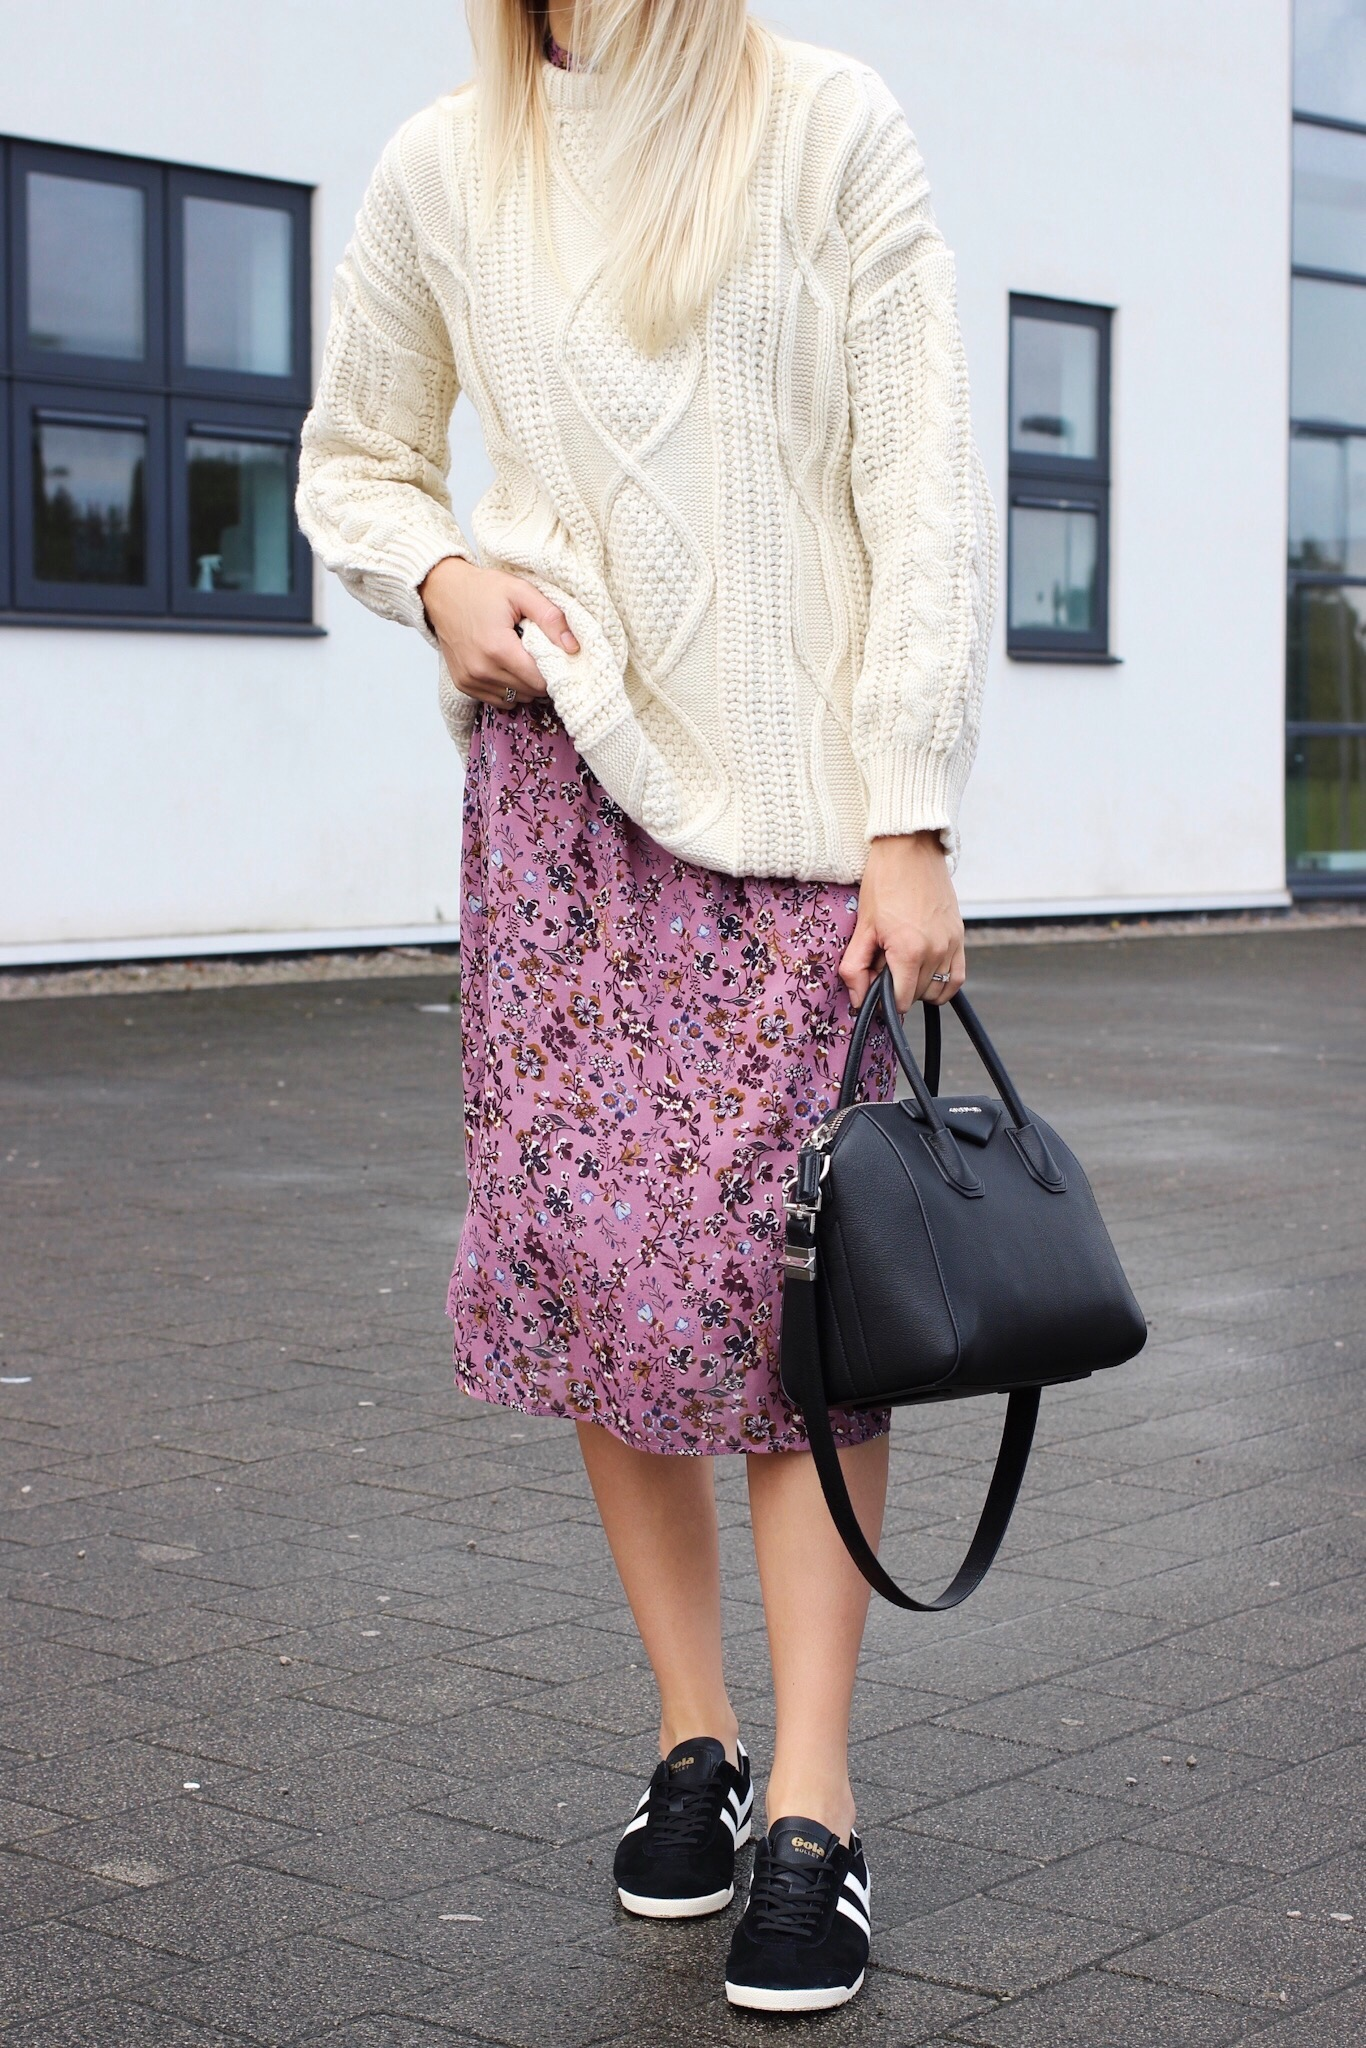 How to wear a midi skirt and trainers